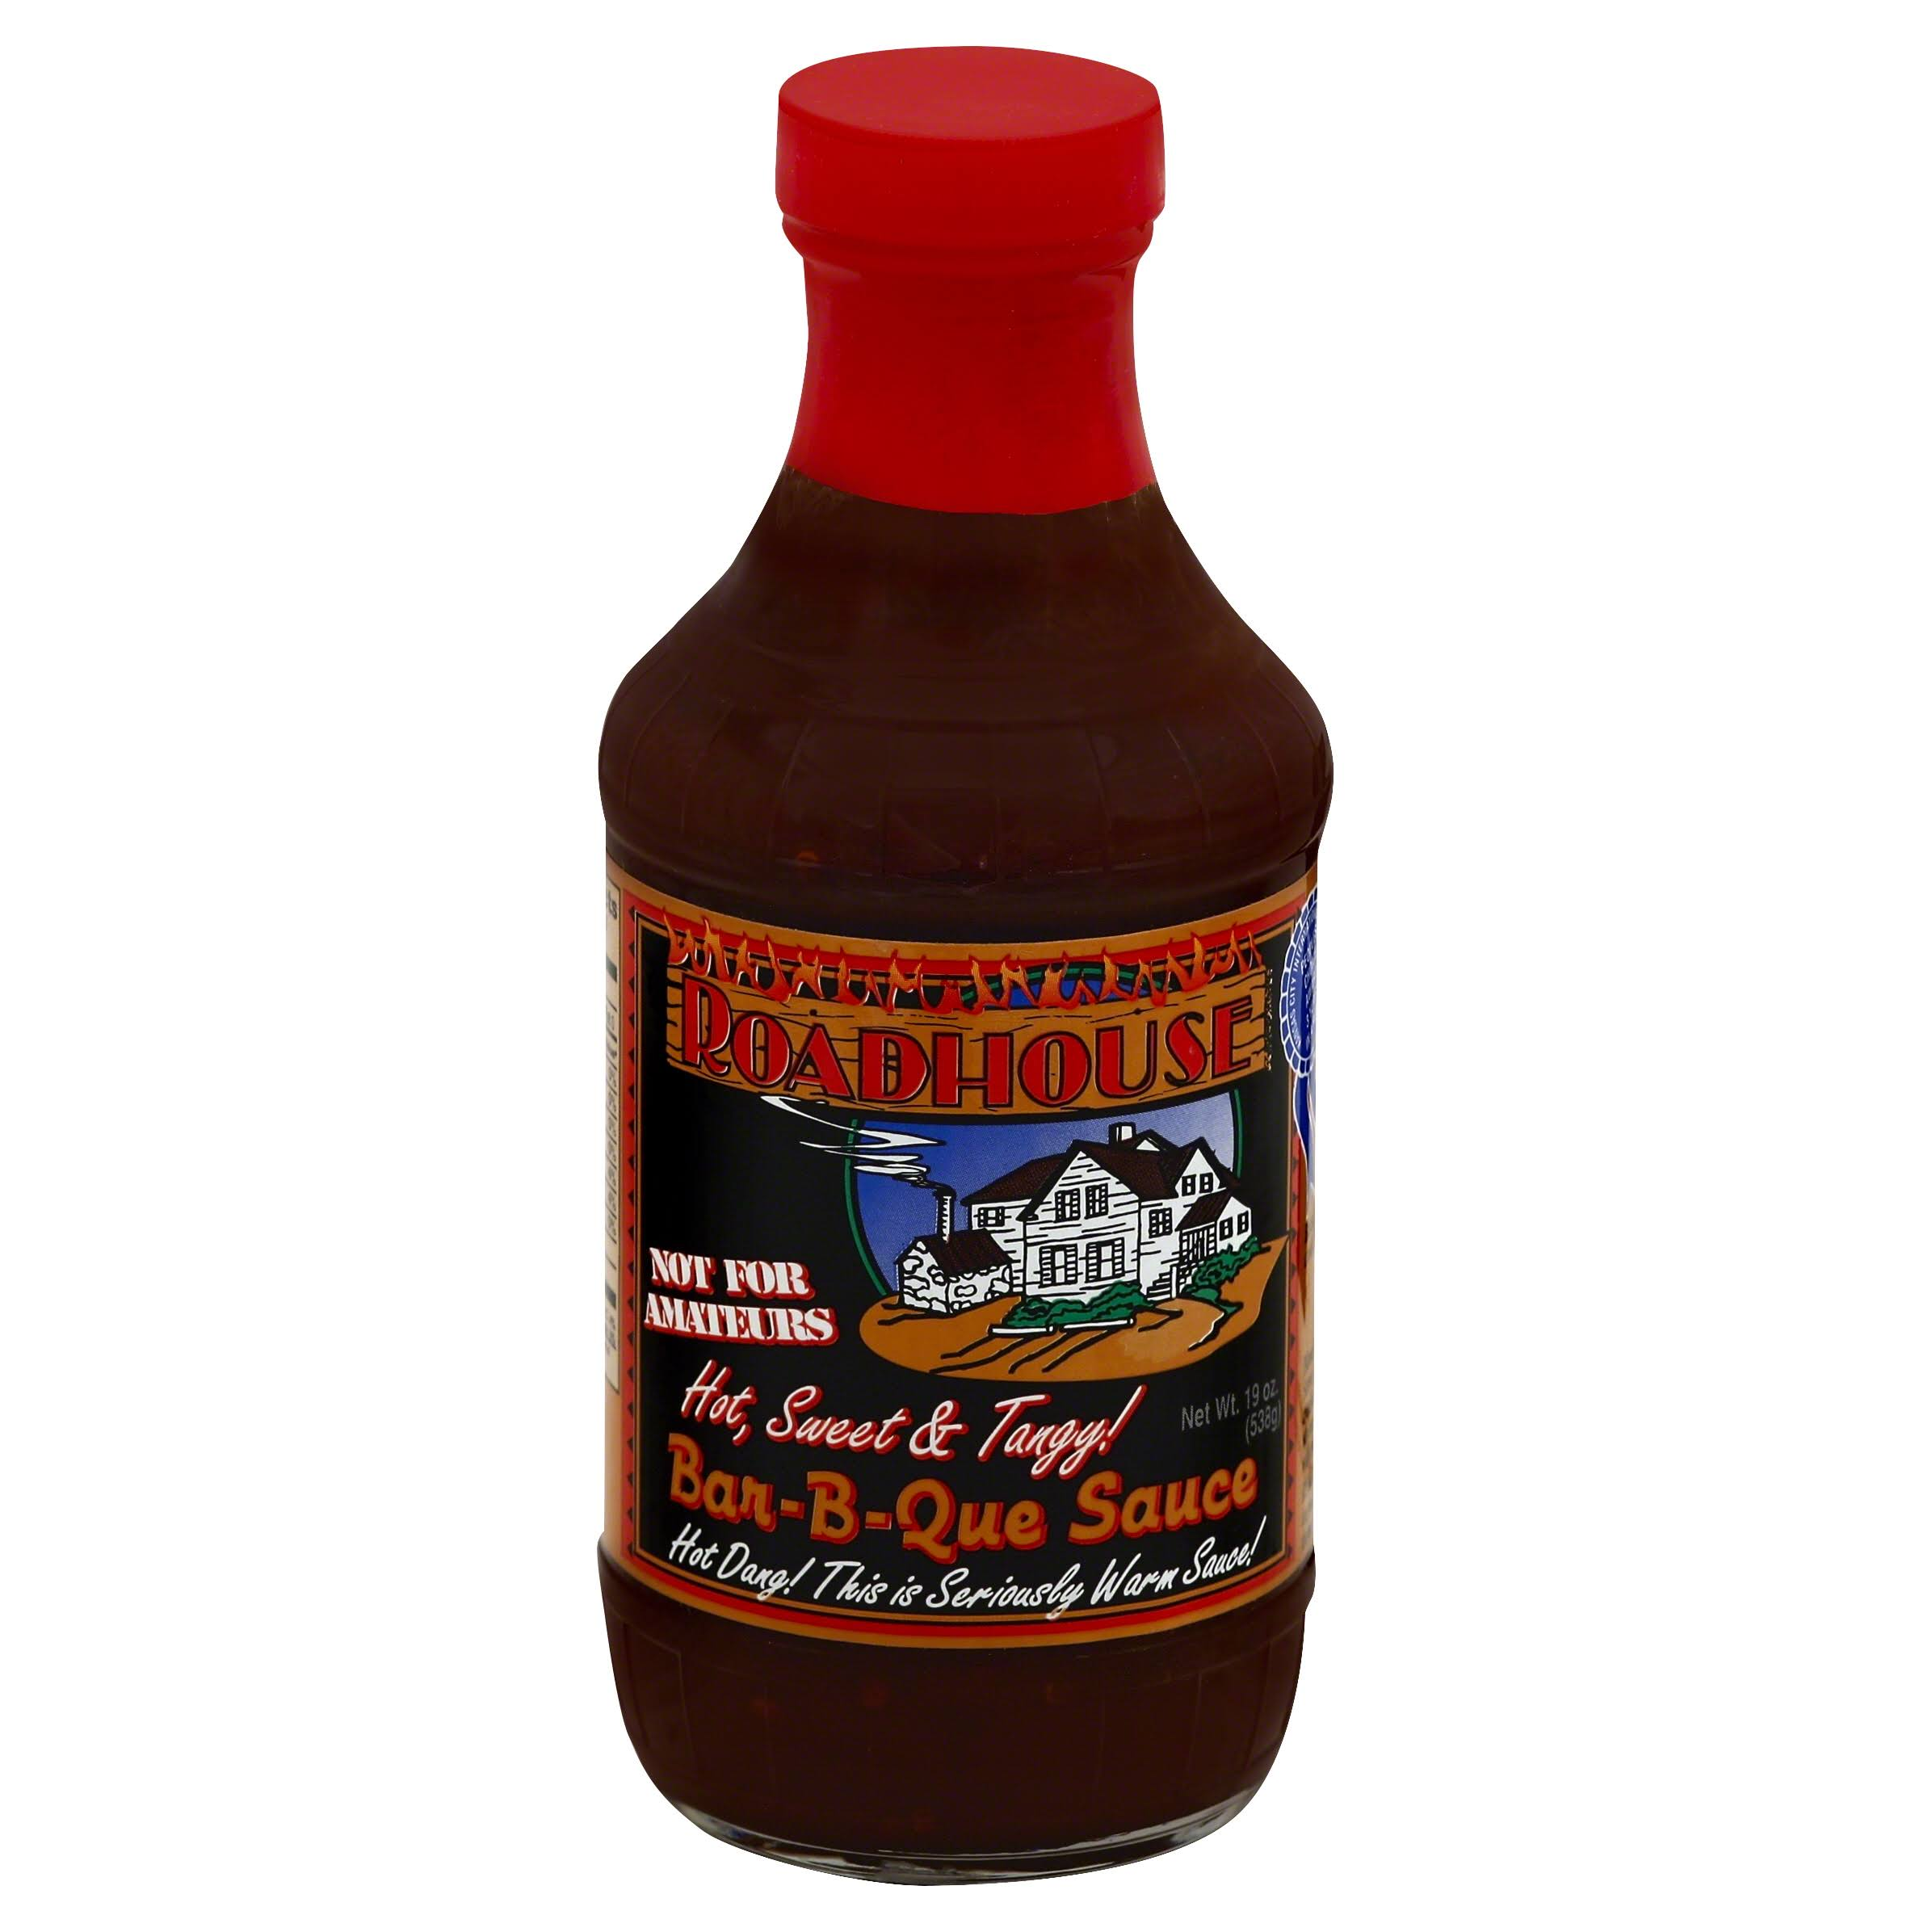 Roadhouse Bar-B-Que Sauce, Hot, Sweet & Tangy! - 19 oz